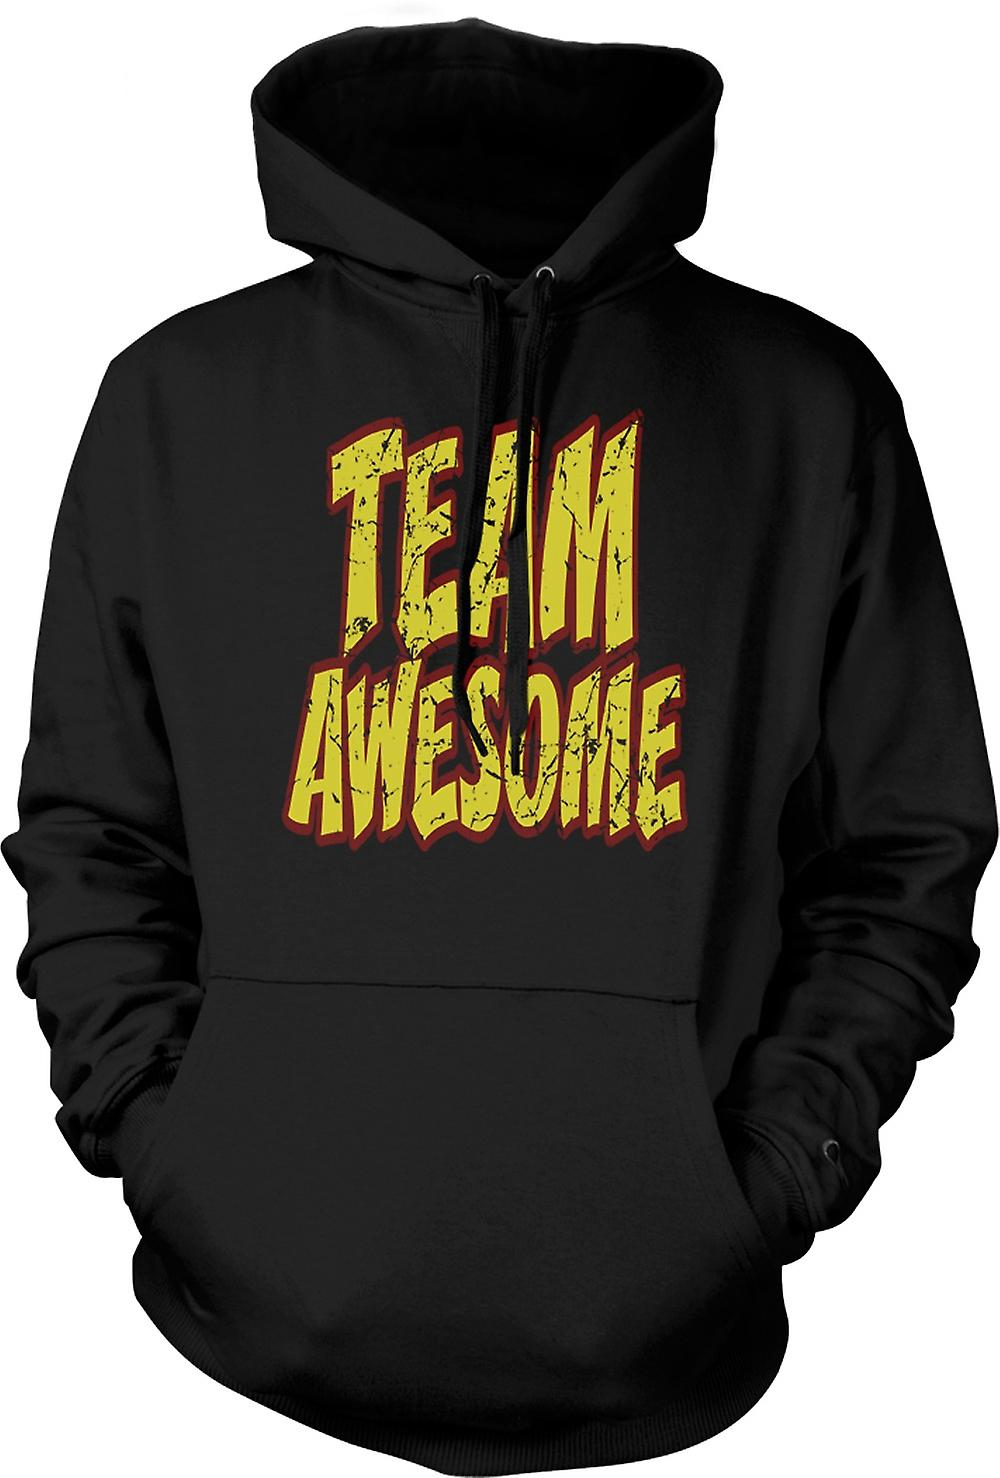 Mens Hoodie - Team Awesome - Funny